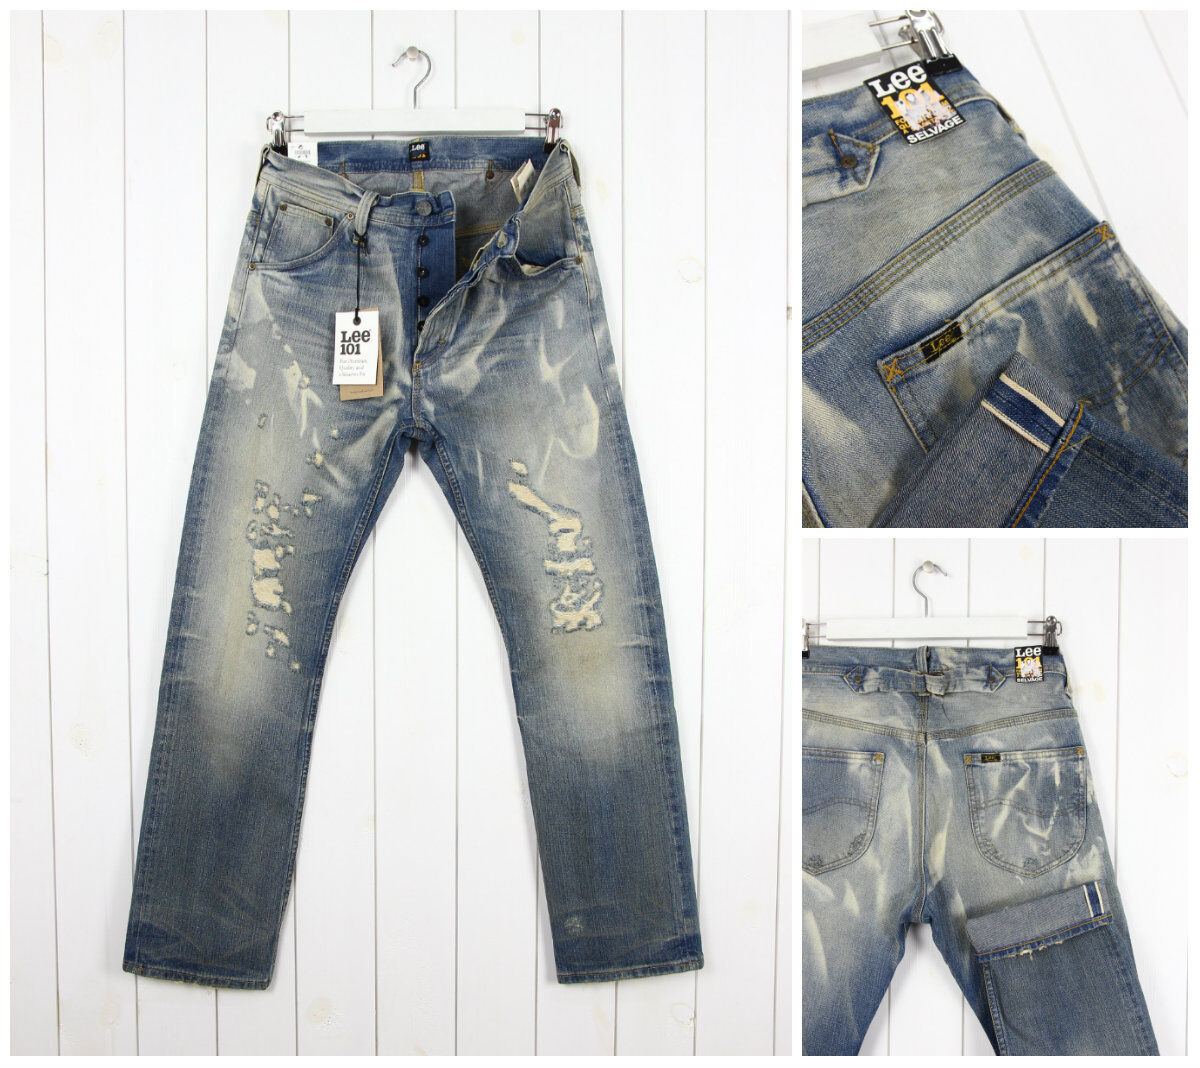 NEU Lee 101B Cowboy Jeans Distressed Dirty gerades Bein W29 W30 W31 L32